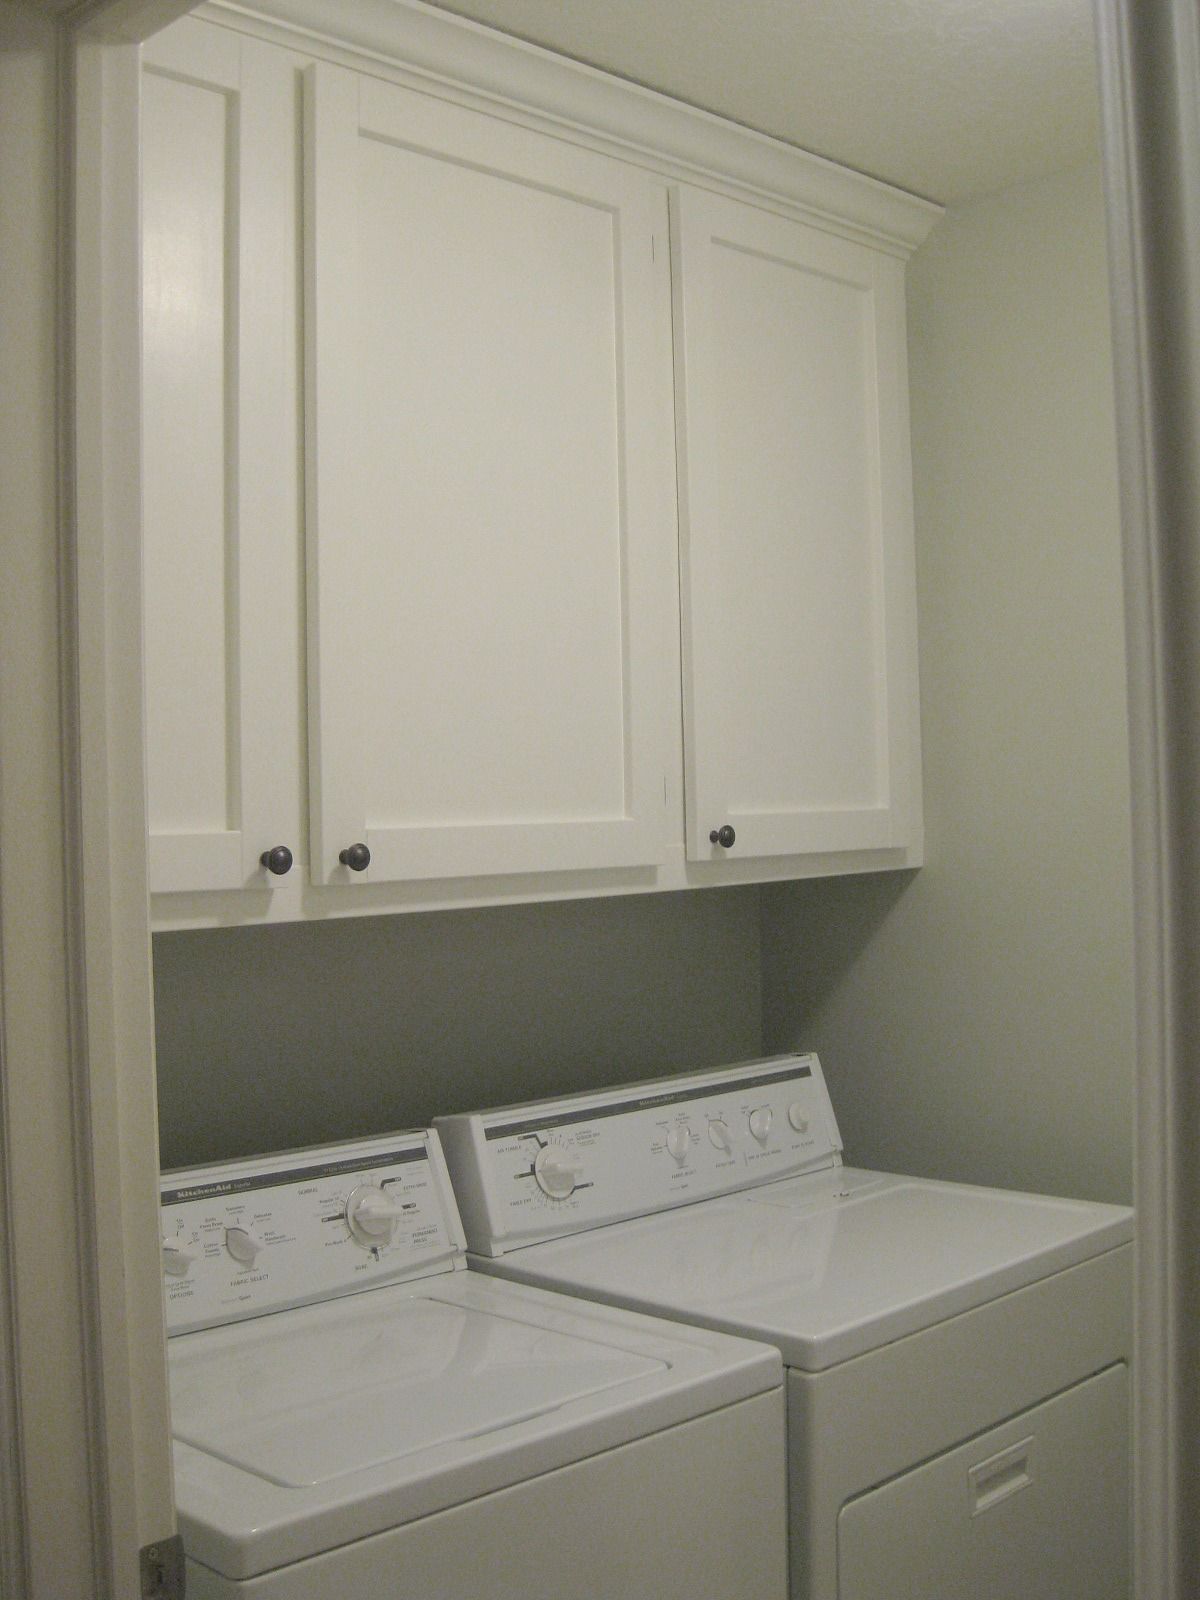 Tda Decorating And Design Laundry Room Cabinet Tutorial